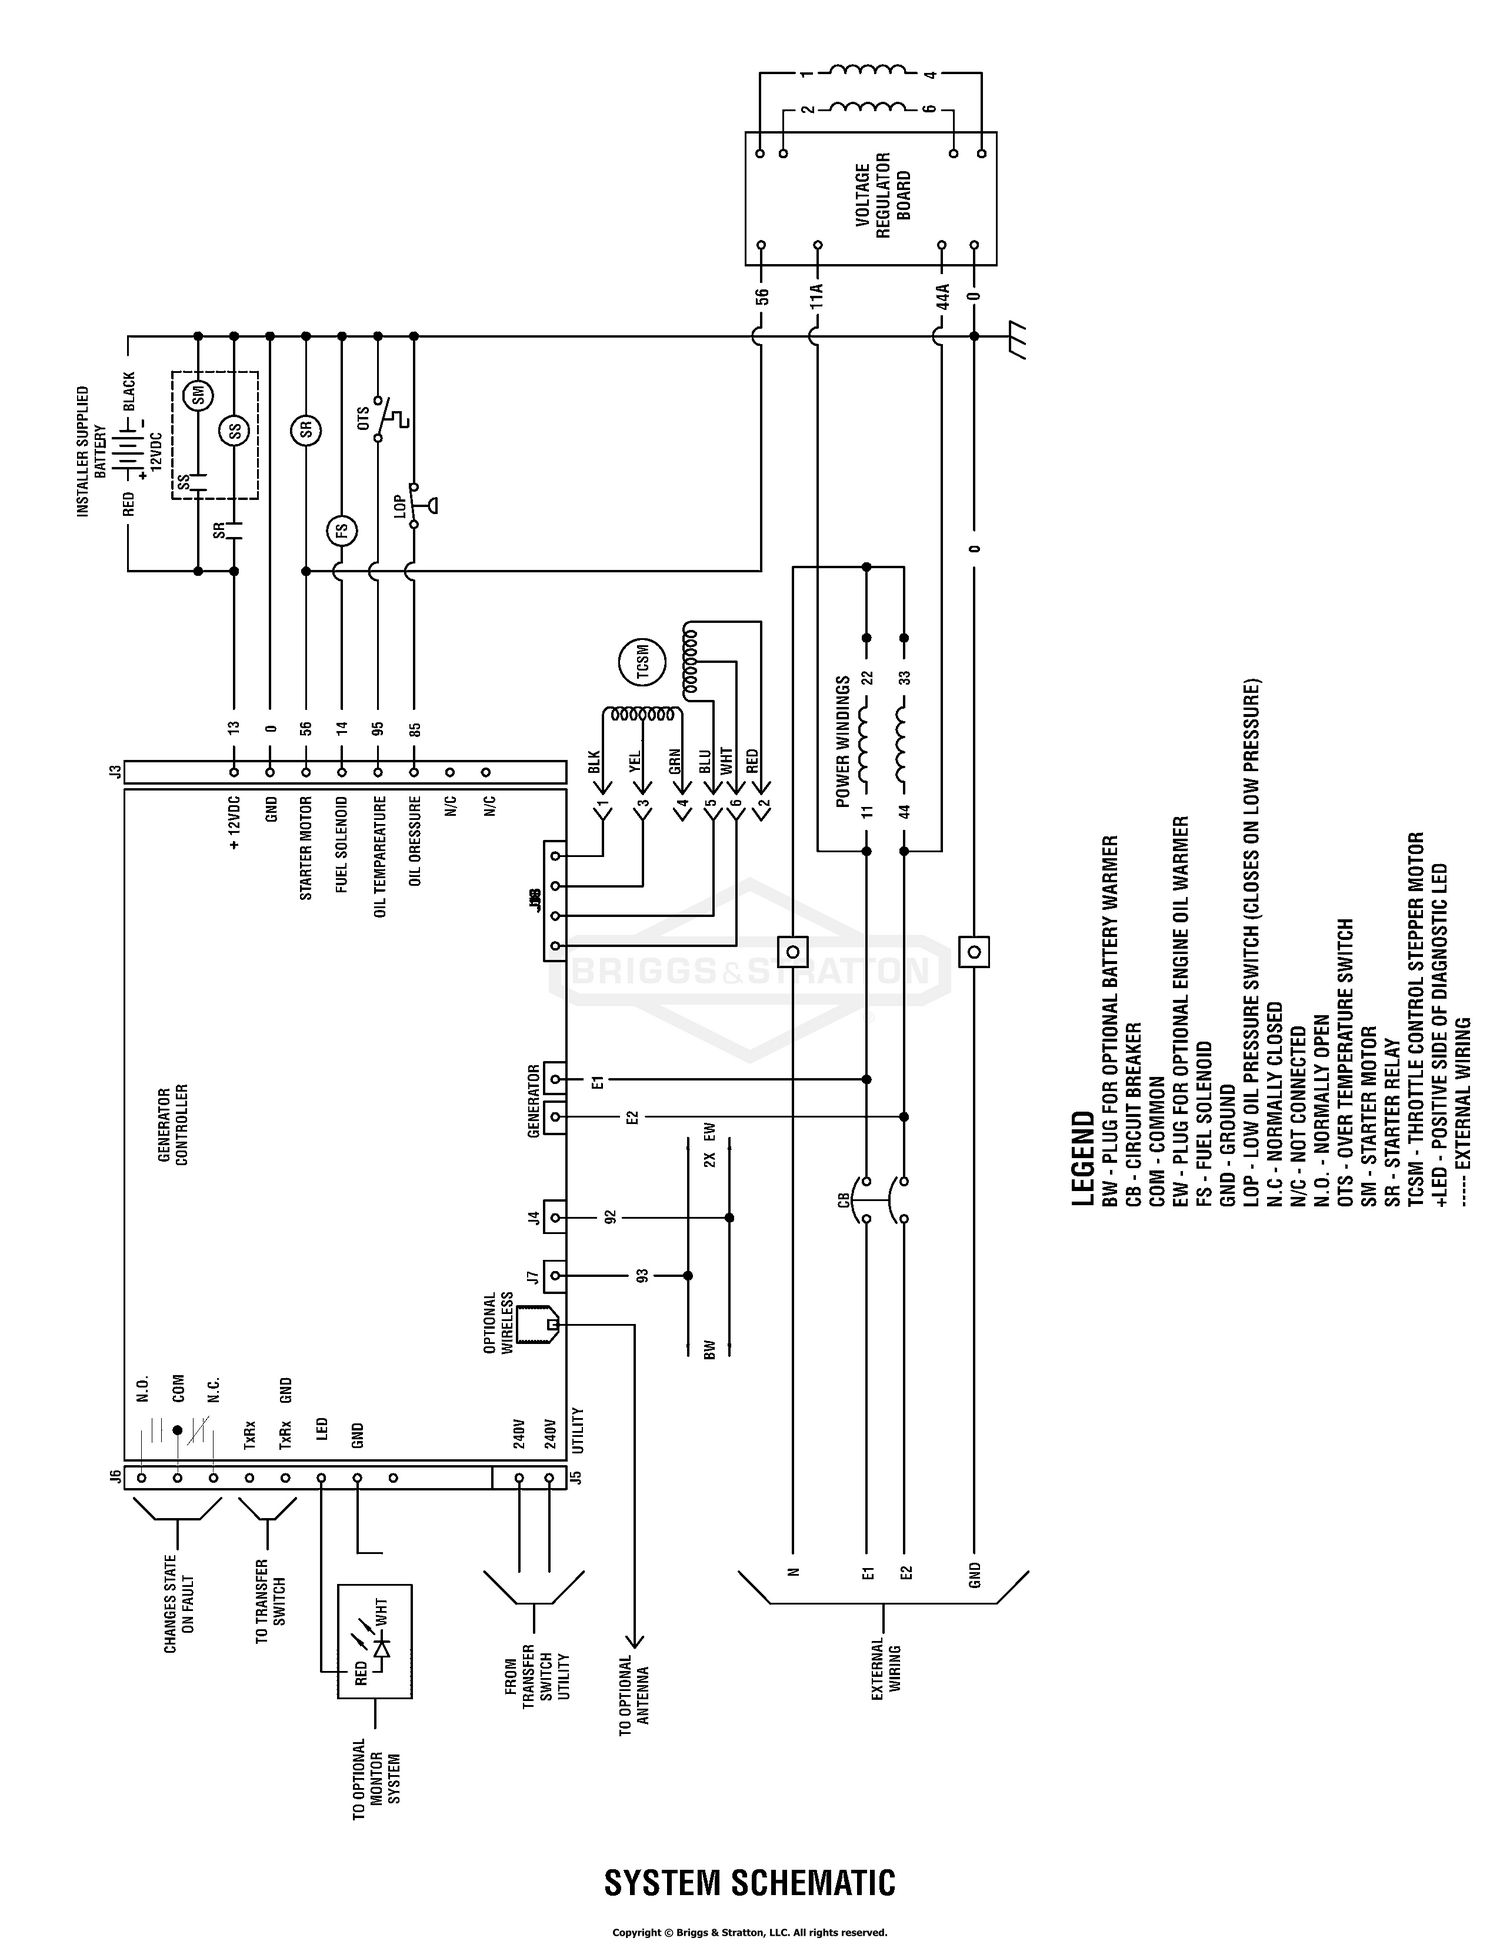 Briggs Amp Stratton Power Products Del 26072017021729 040503 01 200 Electrical Wiring Diagram Schematic Standby Generator